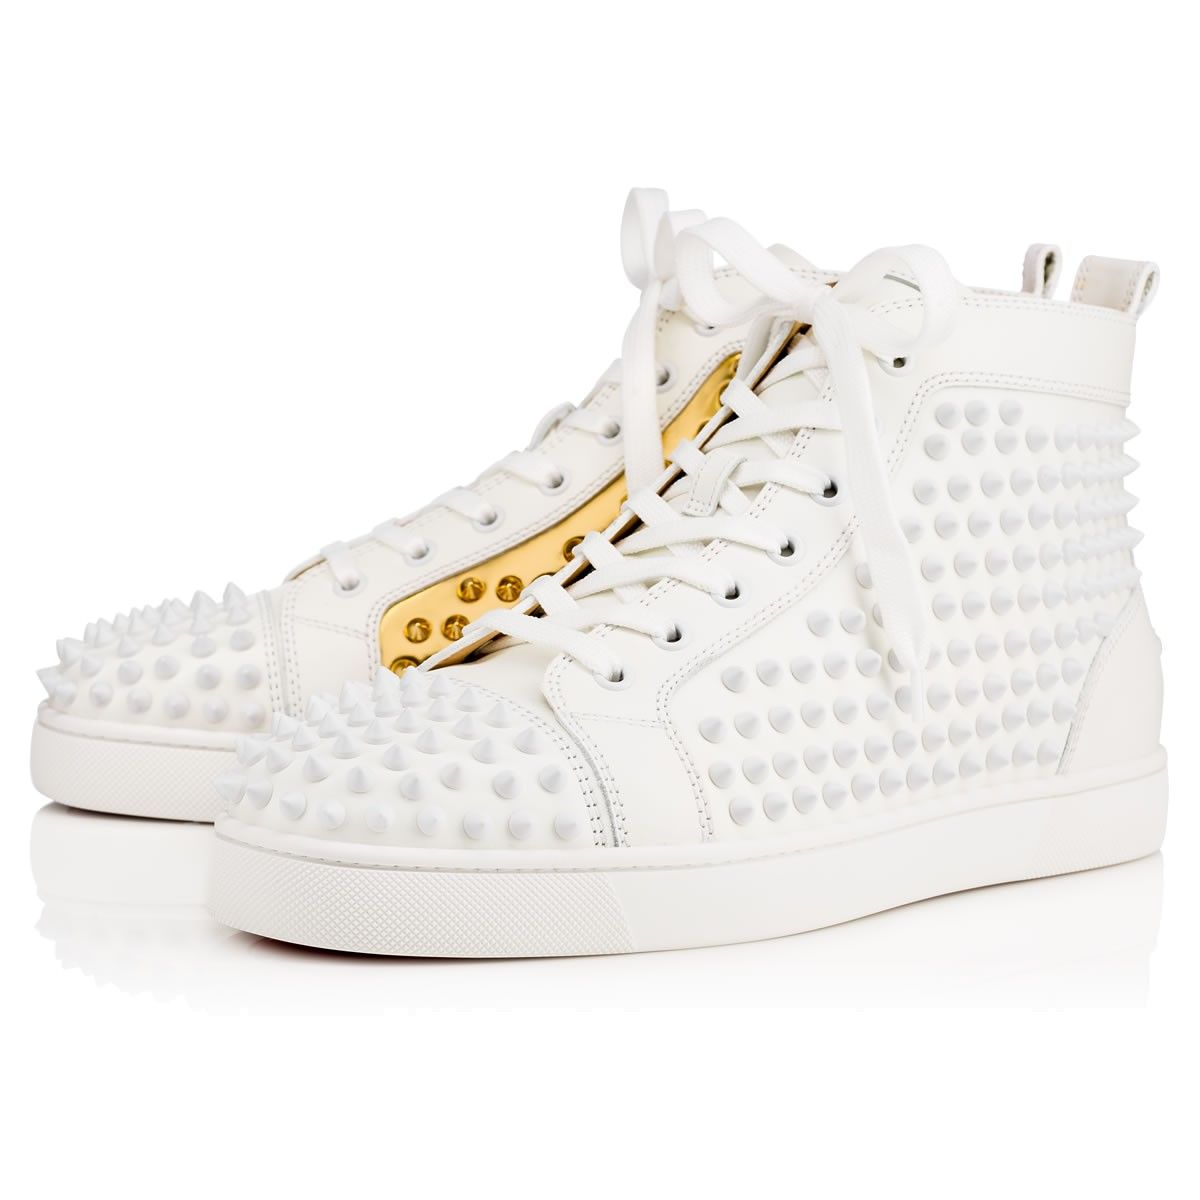 8038c32fccf Shoes - Louis Spikes Men's Flat - Christian Louboutin | Nordstrom ...